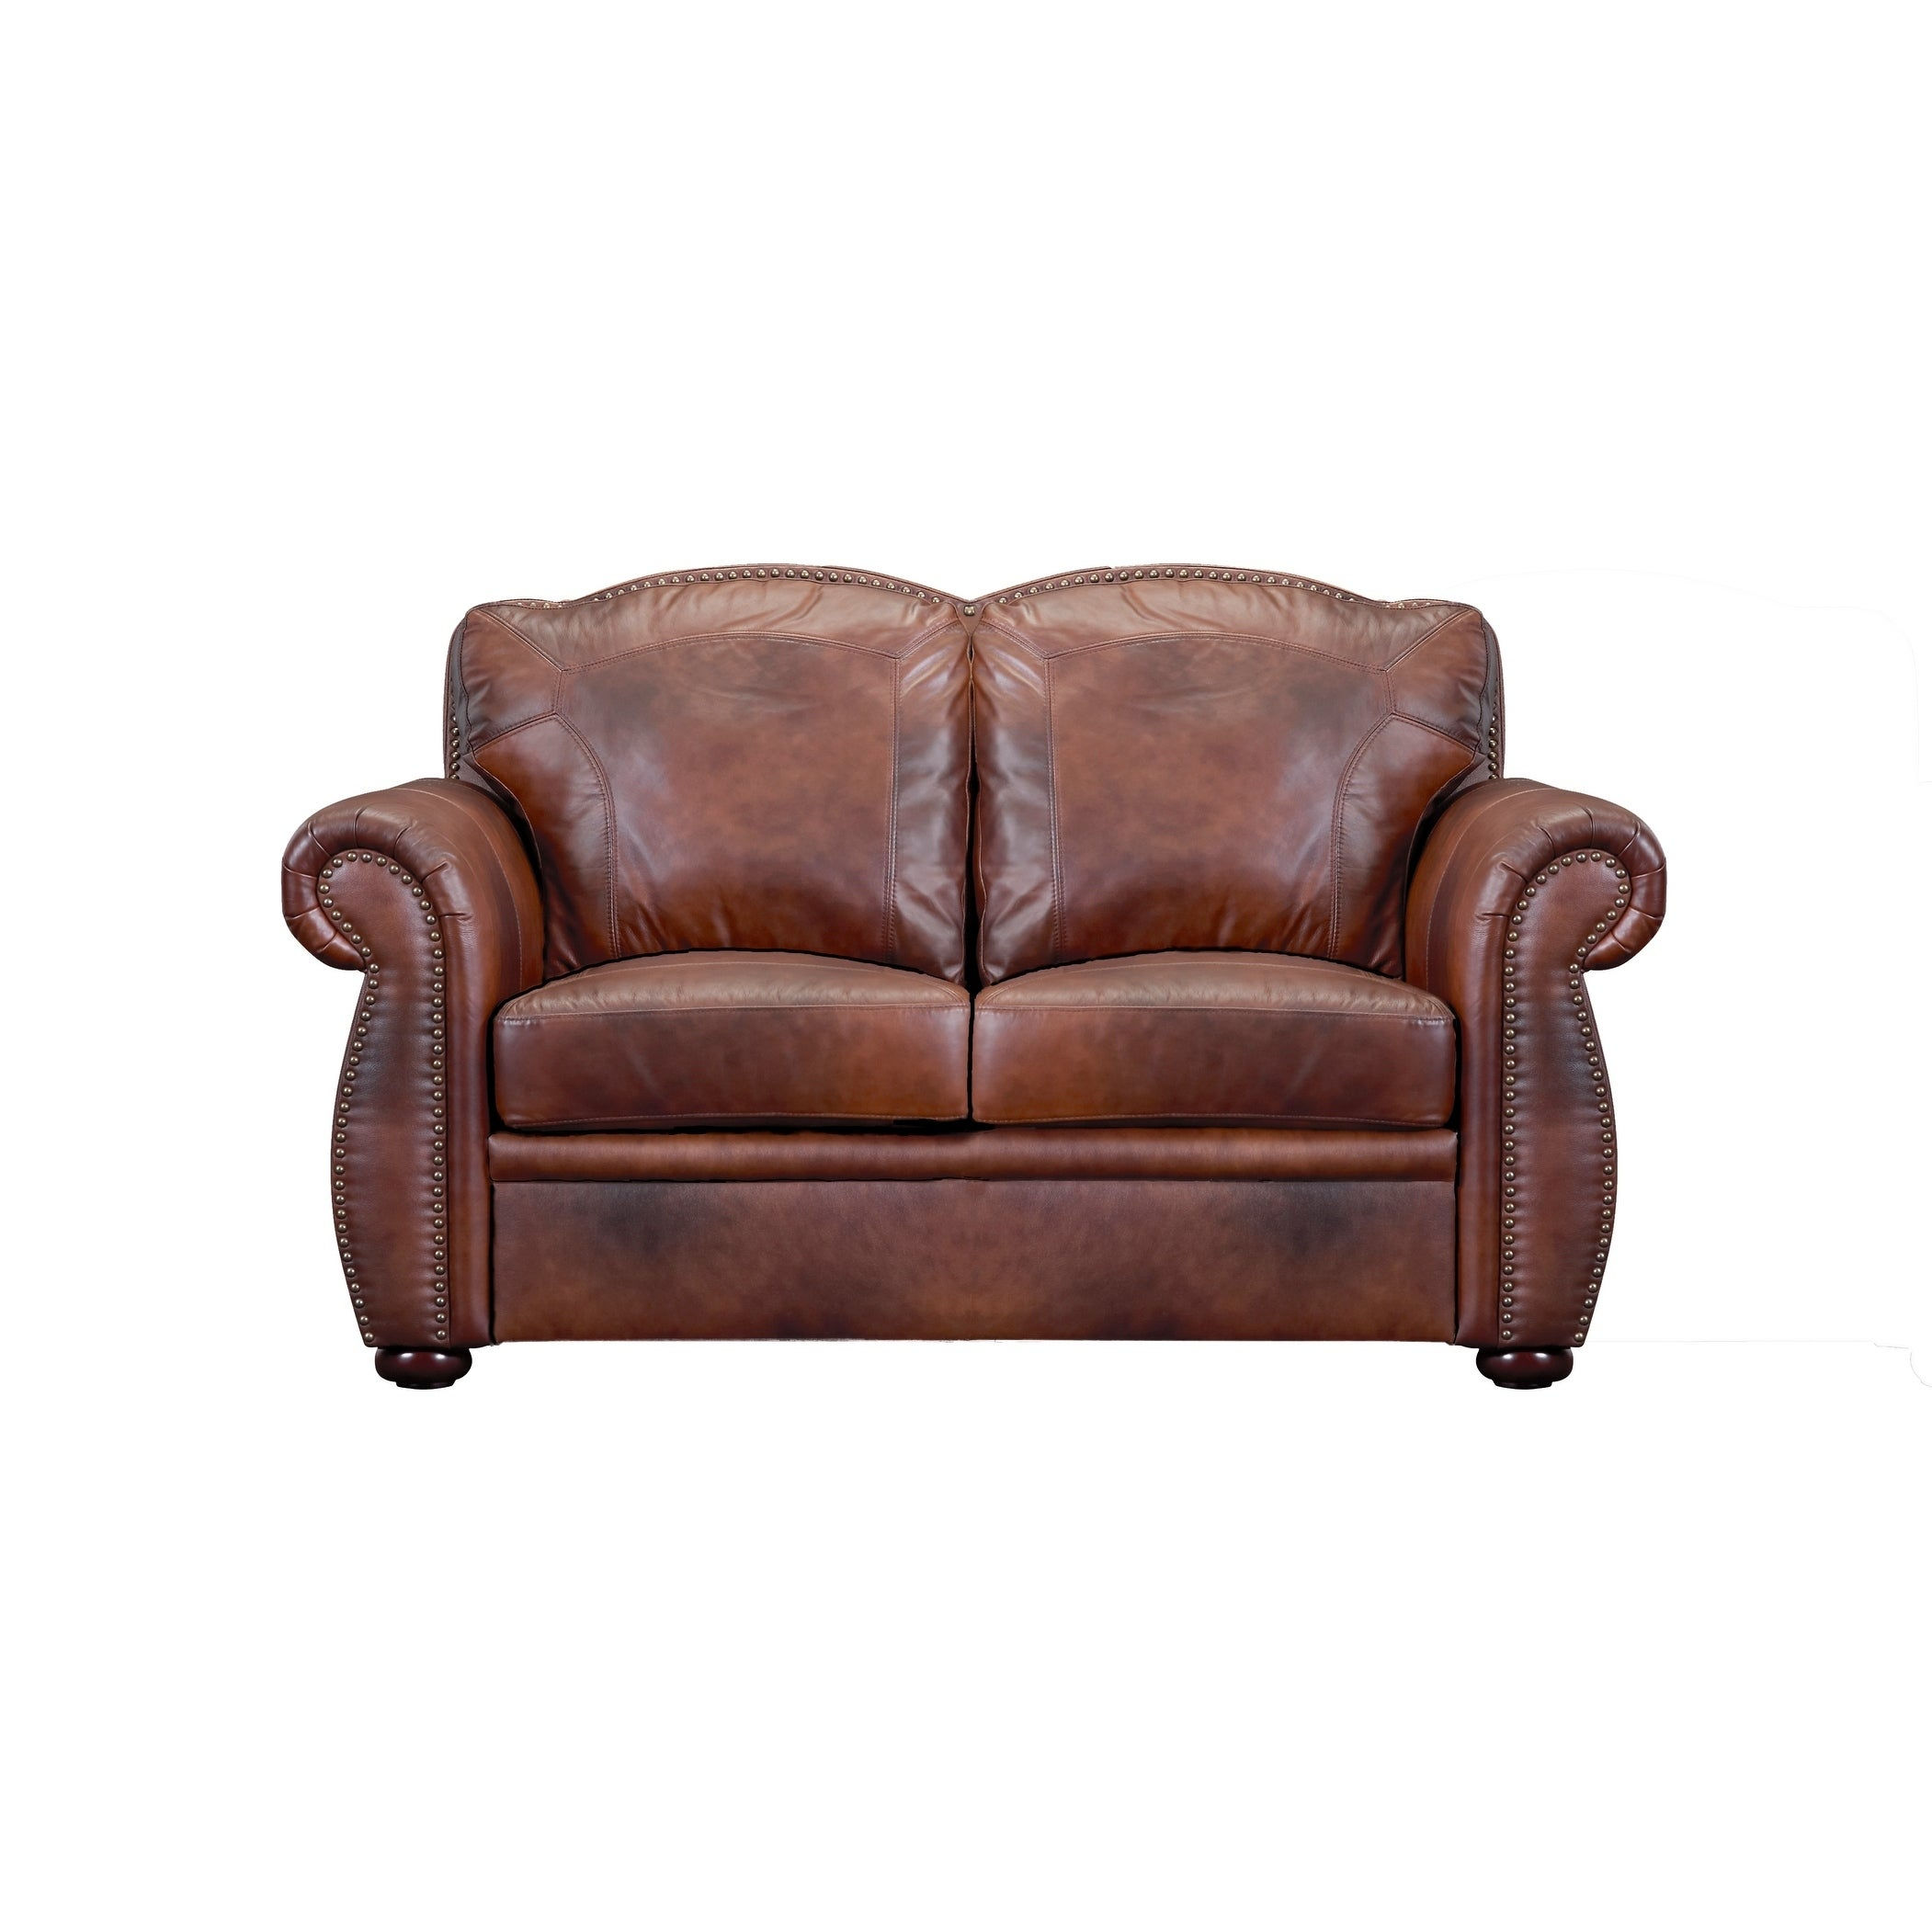 Astonishing Casey Top Grain Italian Leather Loveseat Onthecornerstone Fun Painted Chair Ideas Images Onthecornerstoneorg